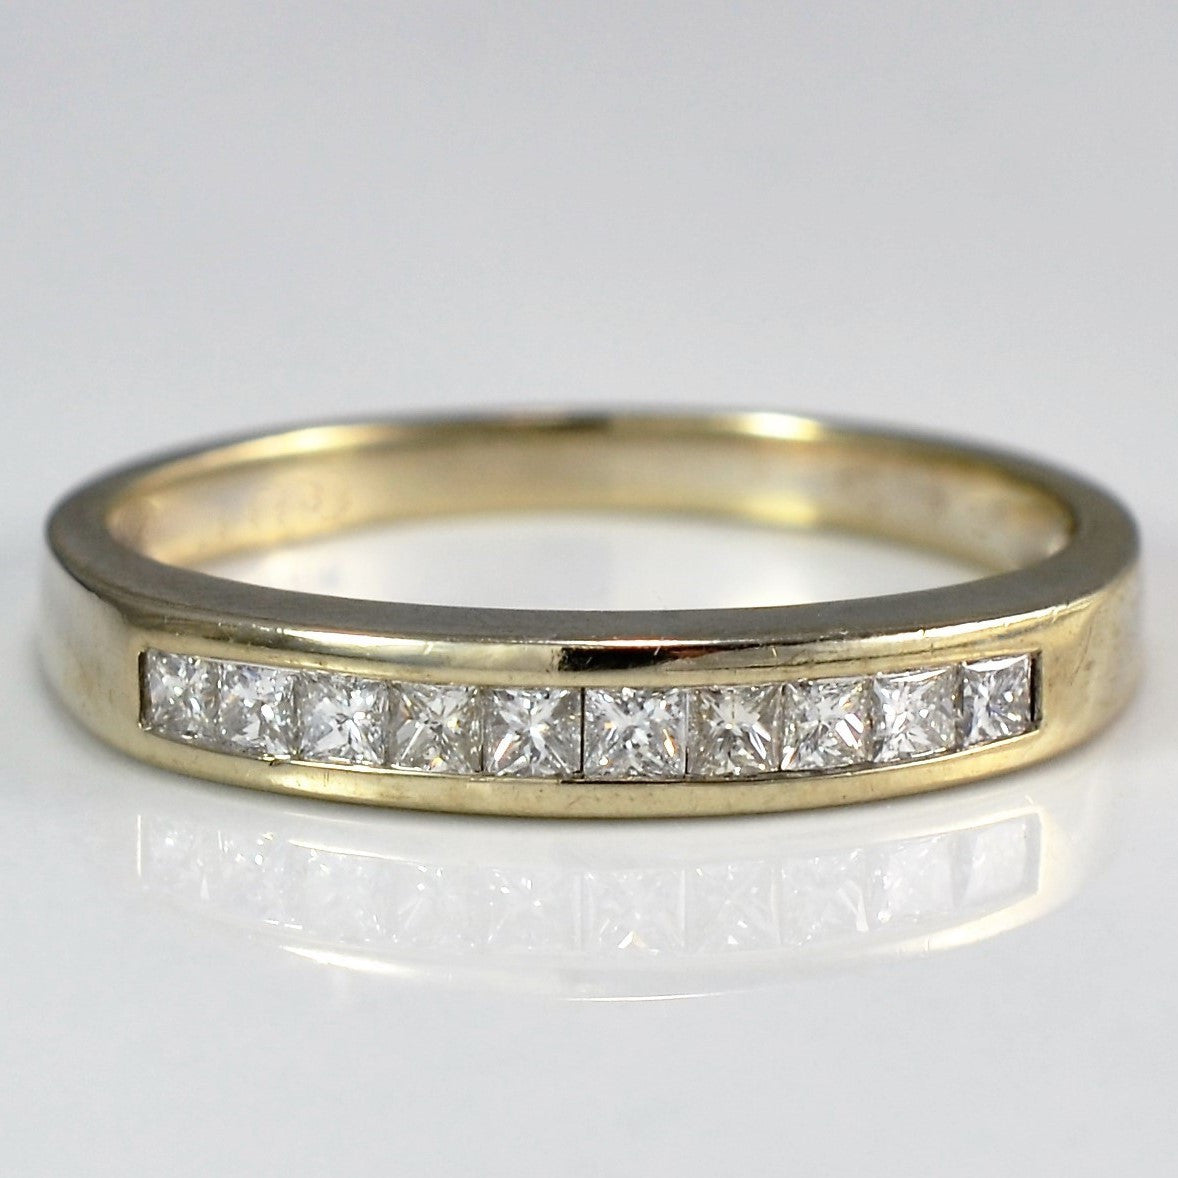 set channel gold wedding twist platinum diamond jewellery berrys ring design rings image white